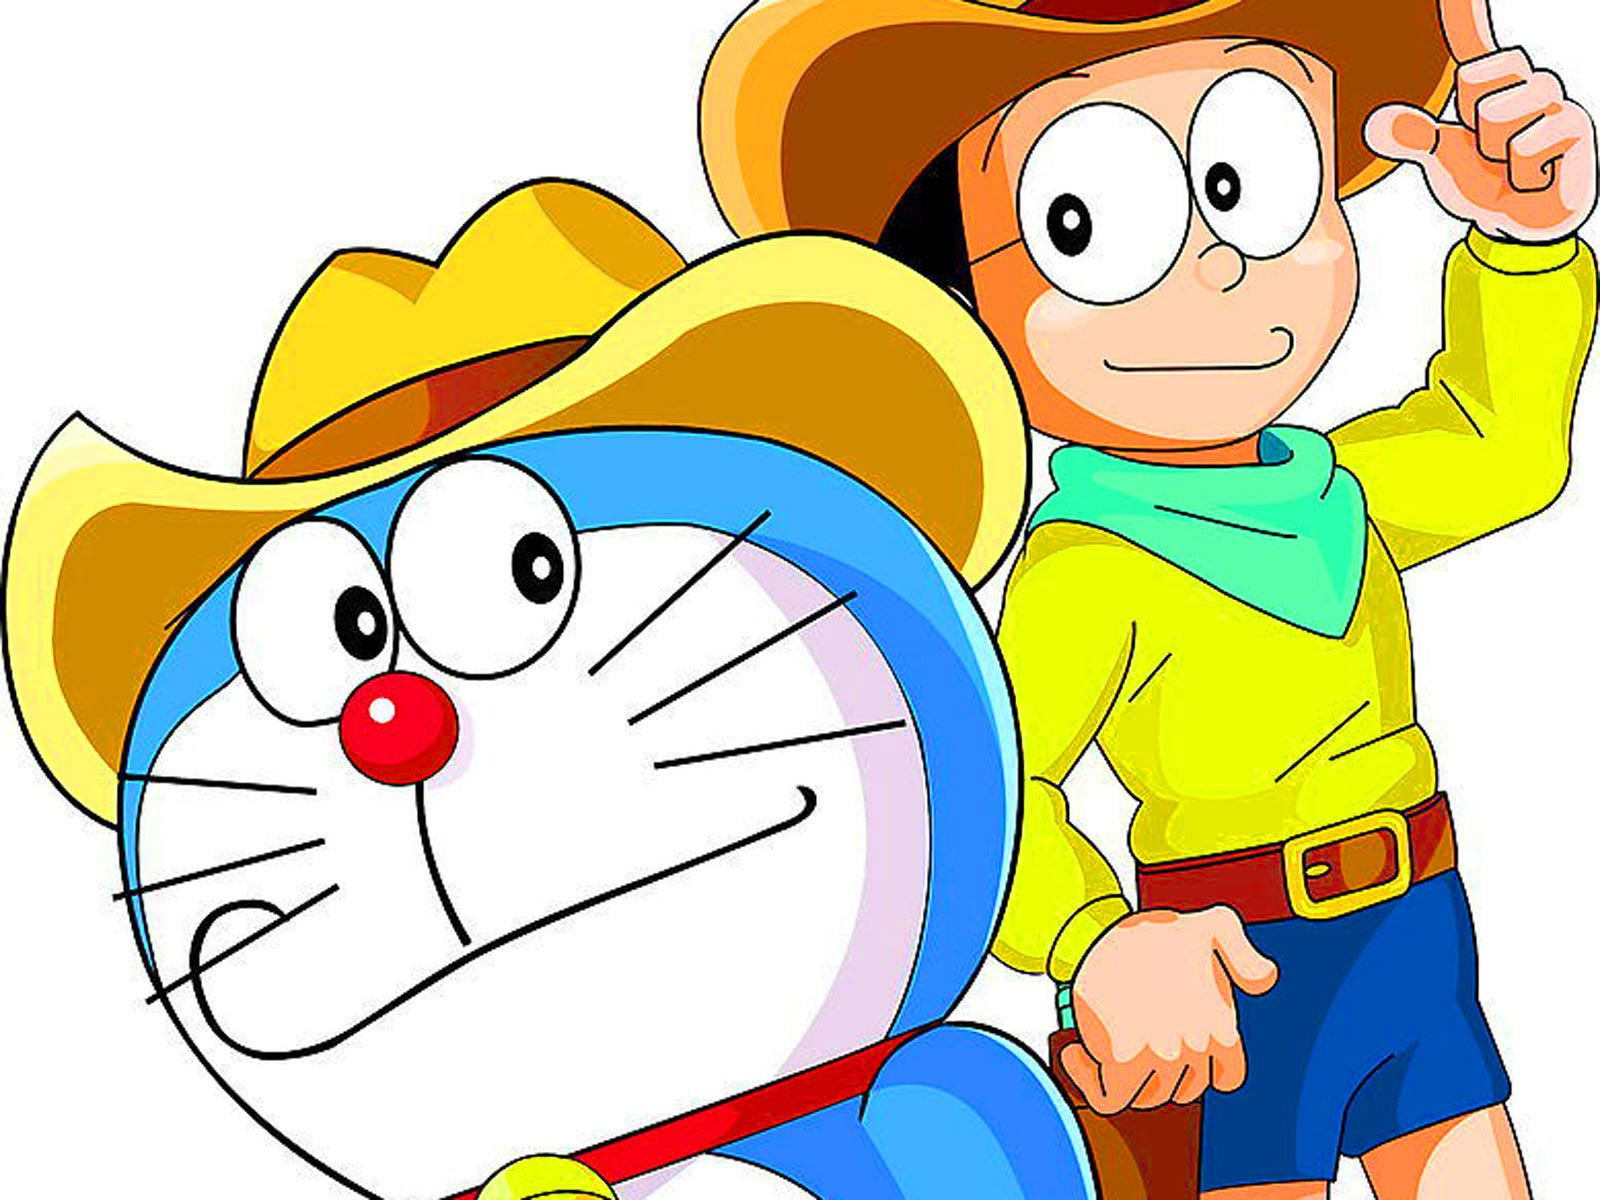 Doraemon Wallpaper HD Cartoon Pinterest Wallpapers